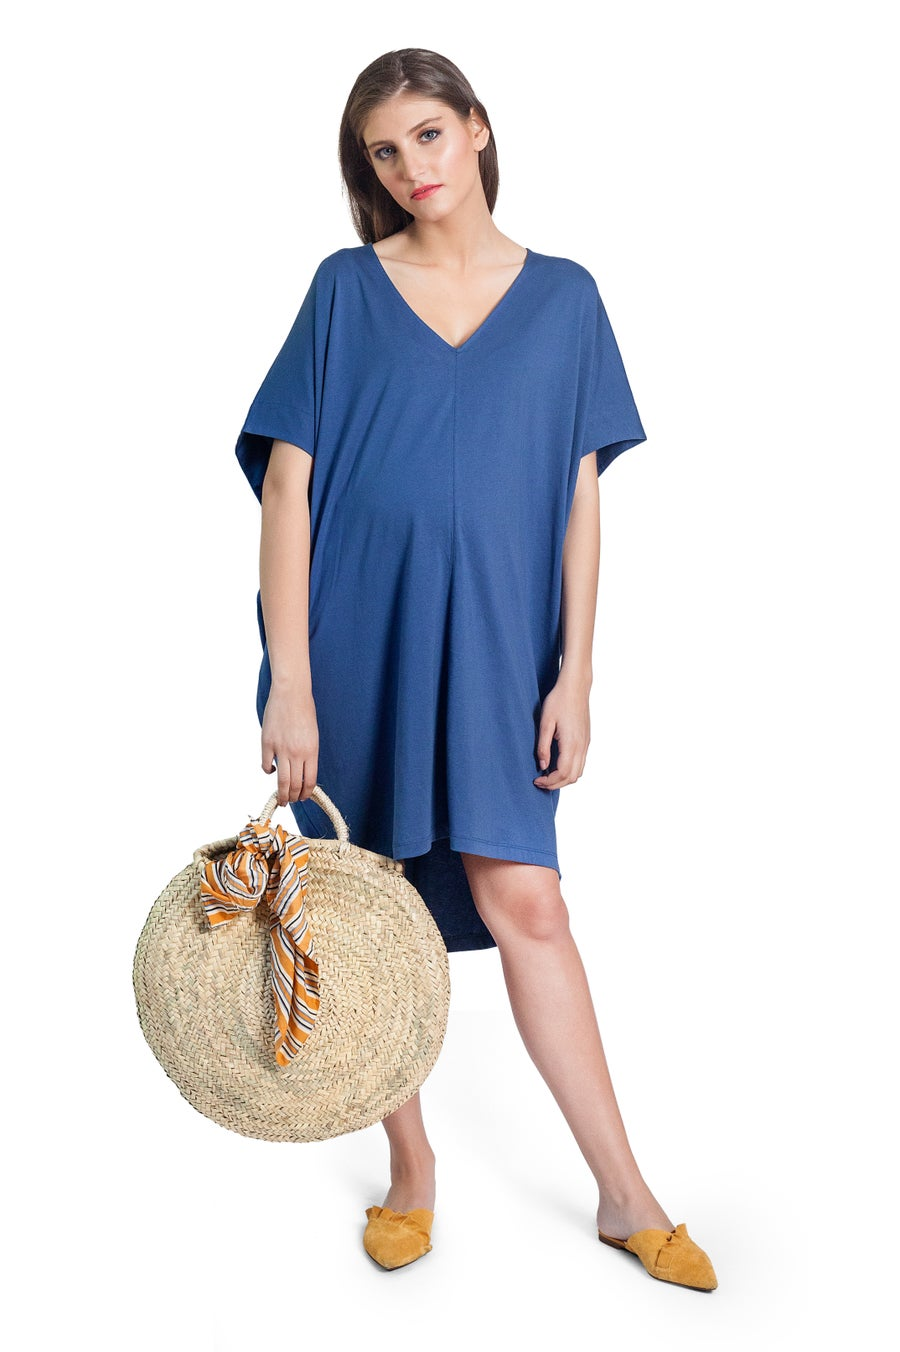 Image of BLISS TUNIC AZUL SALE CLP $25.600